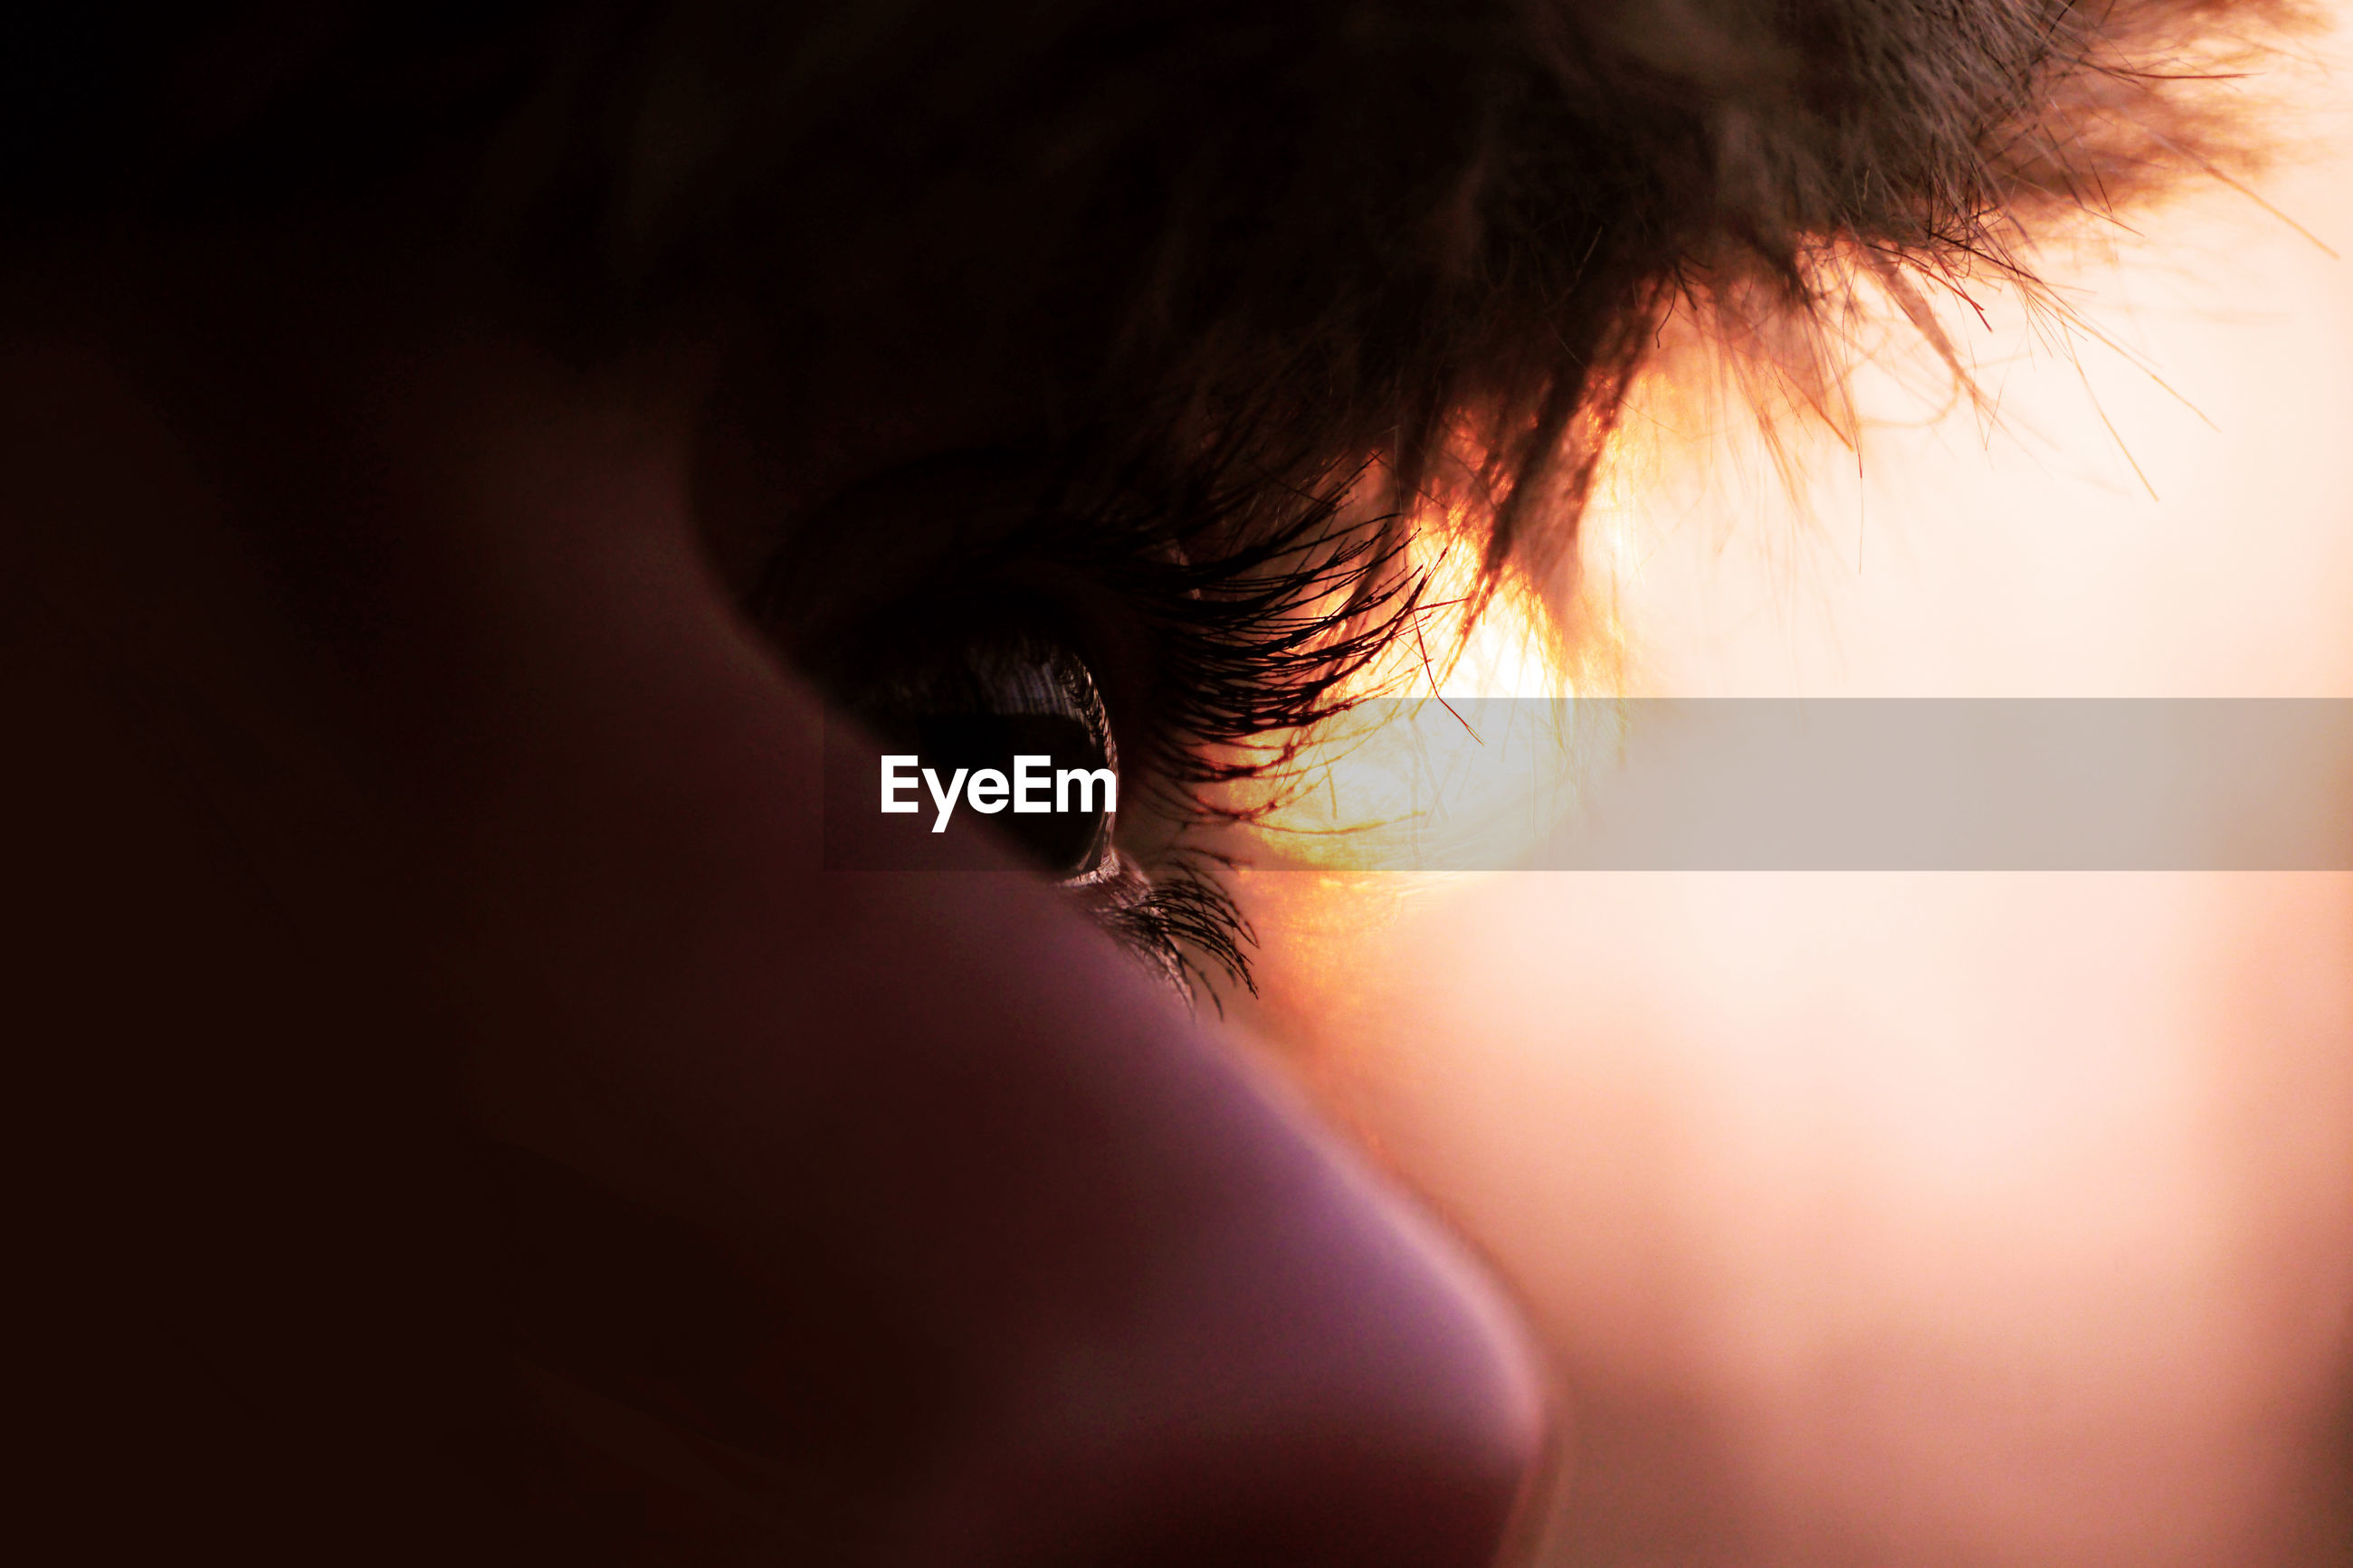 Close-up of woman eye during sunset